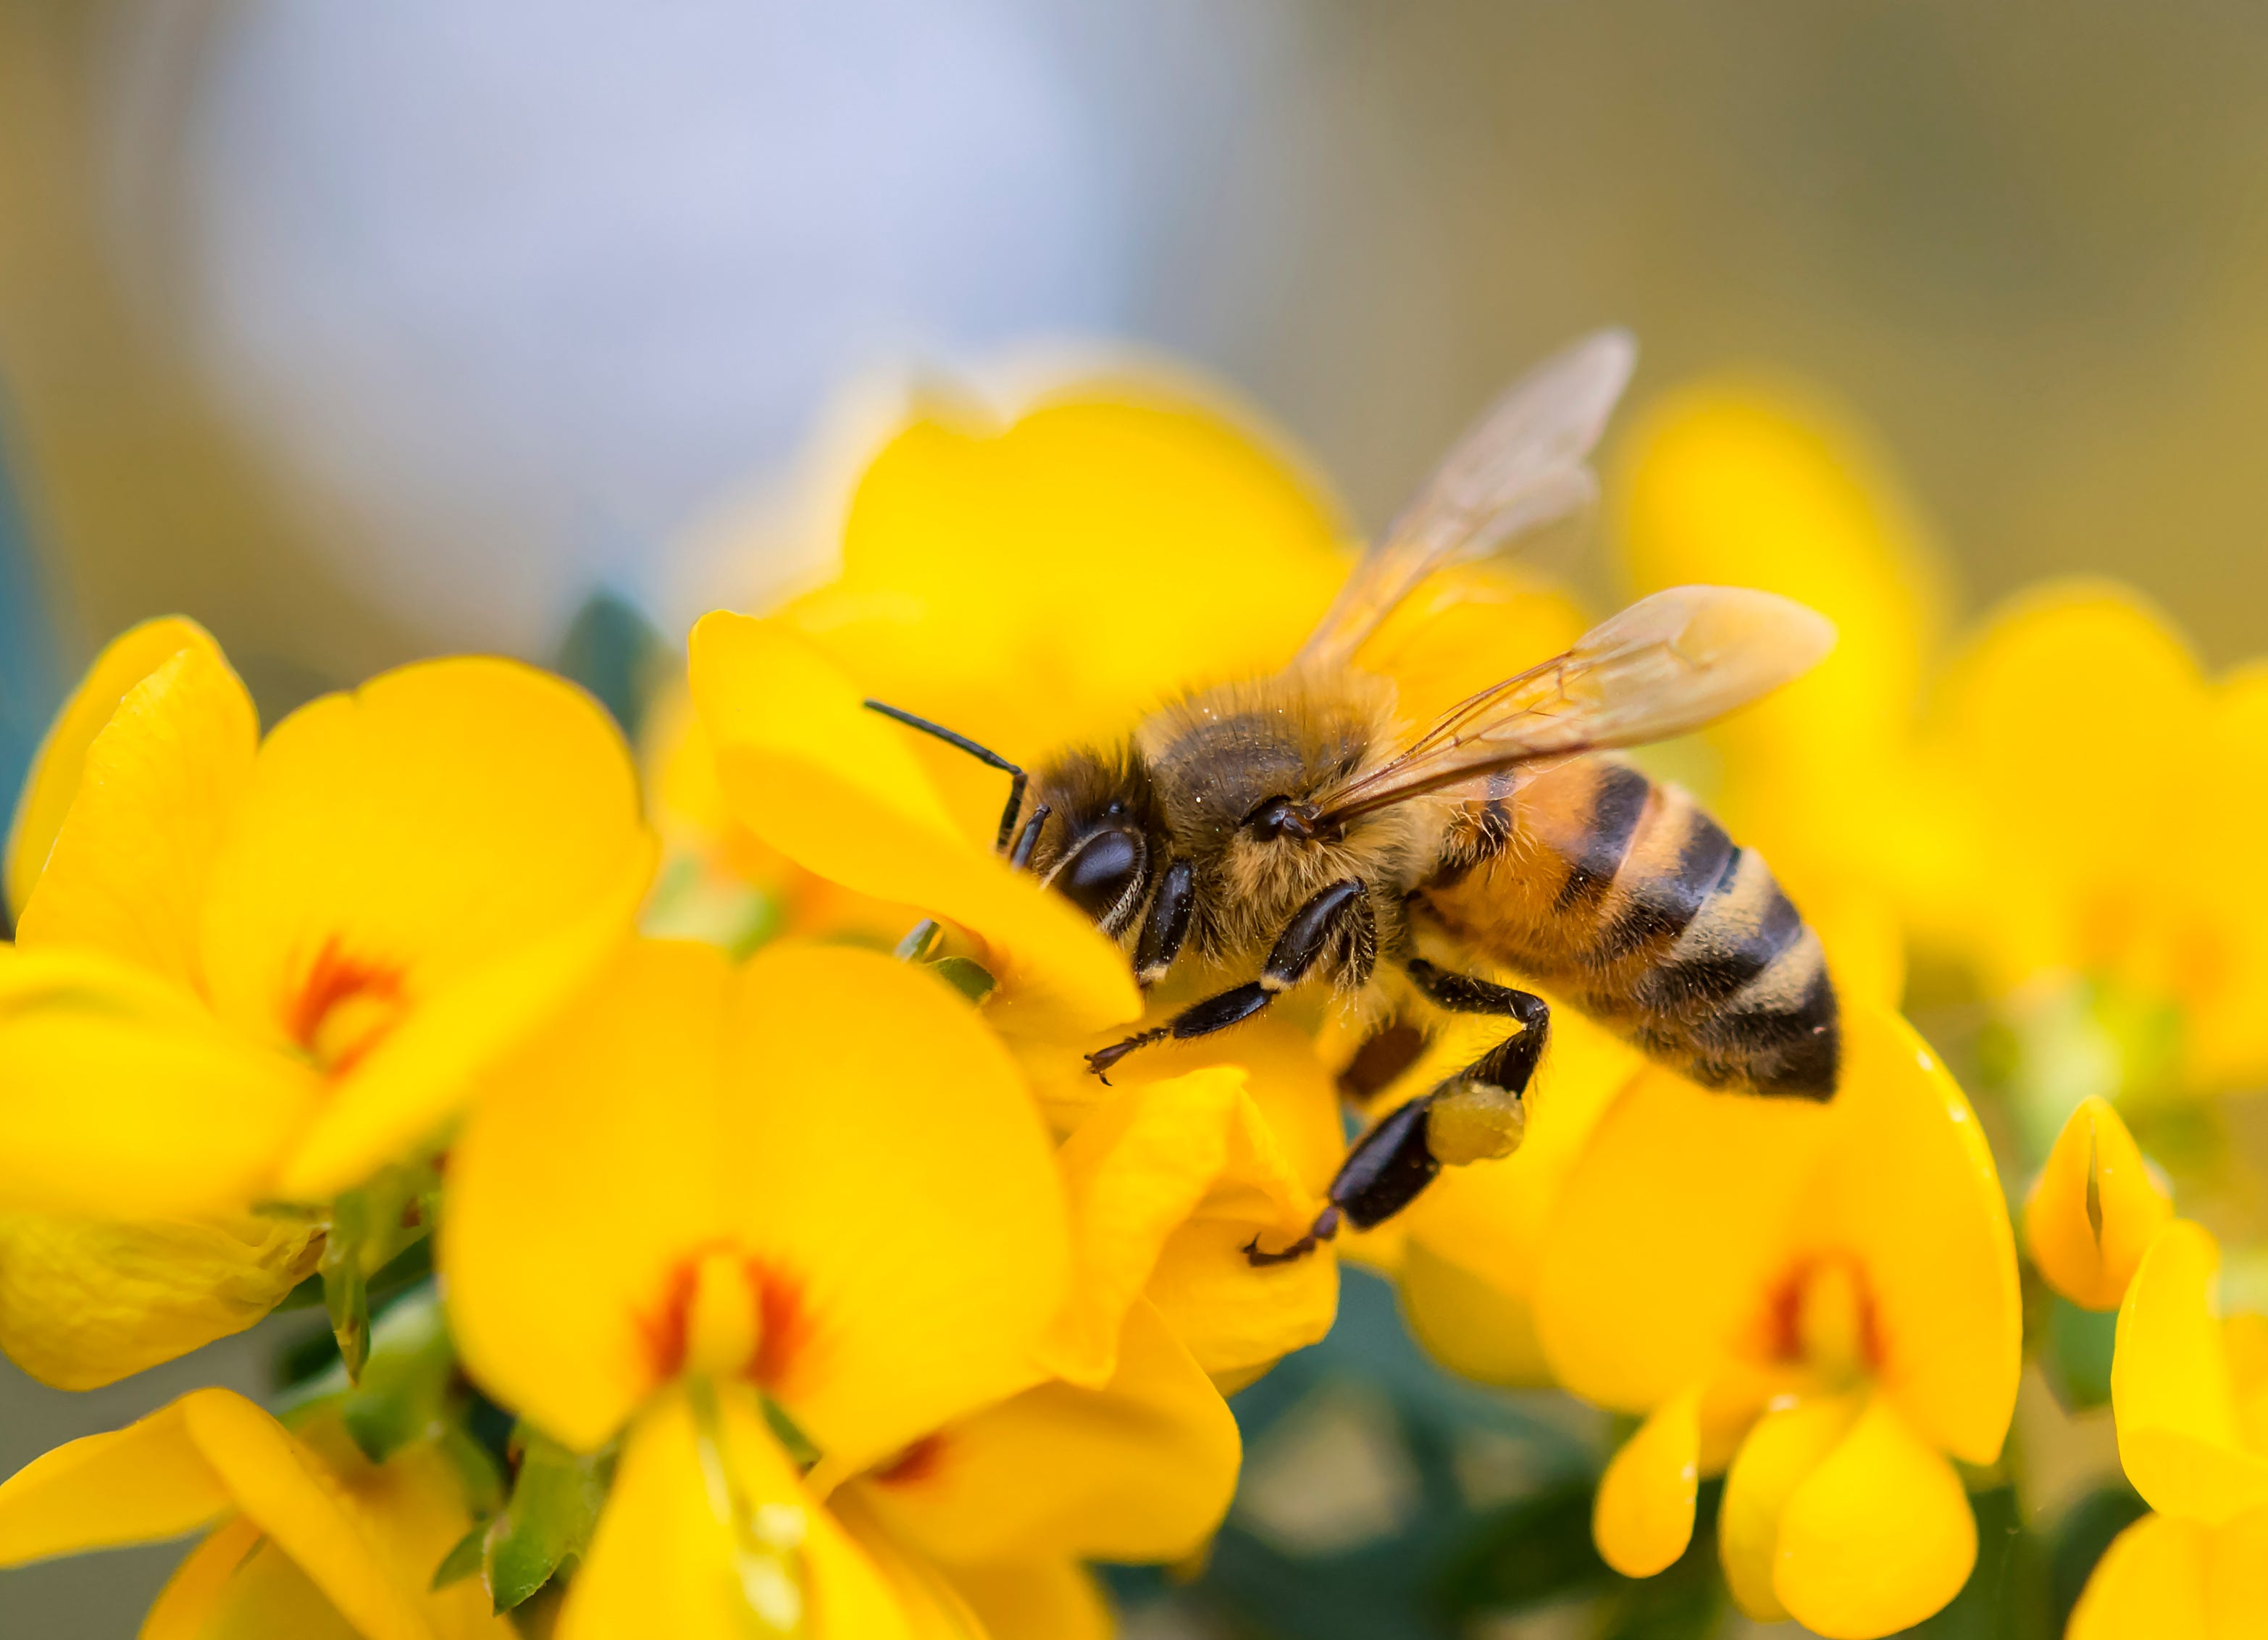 Discussion on this topic: How to Help Save Honey Bees, how-to-help-save-honey-bees/